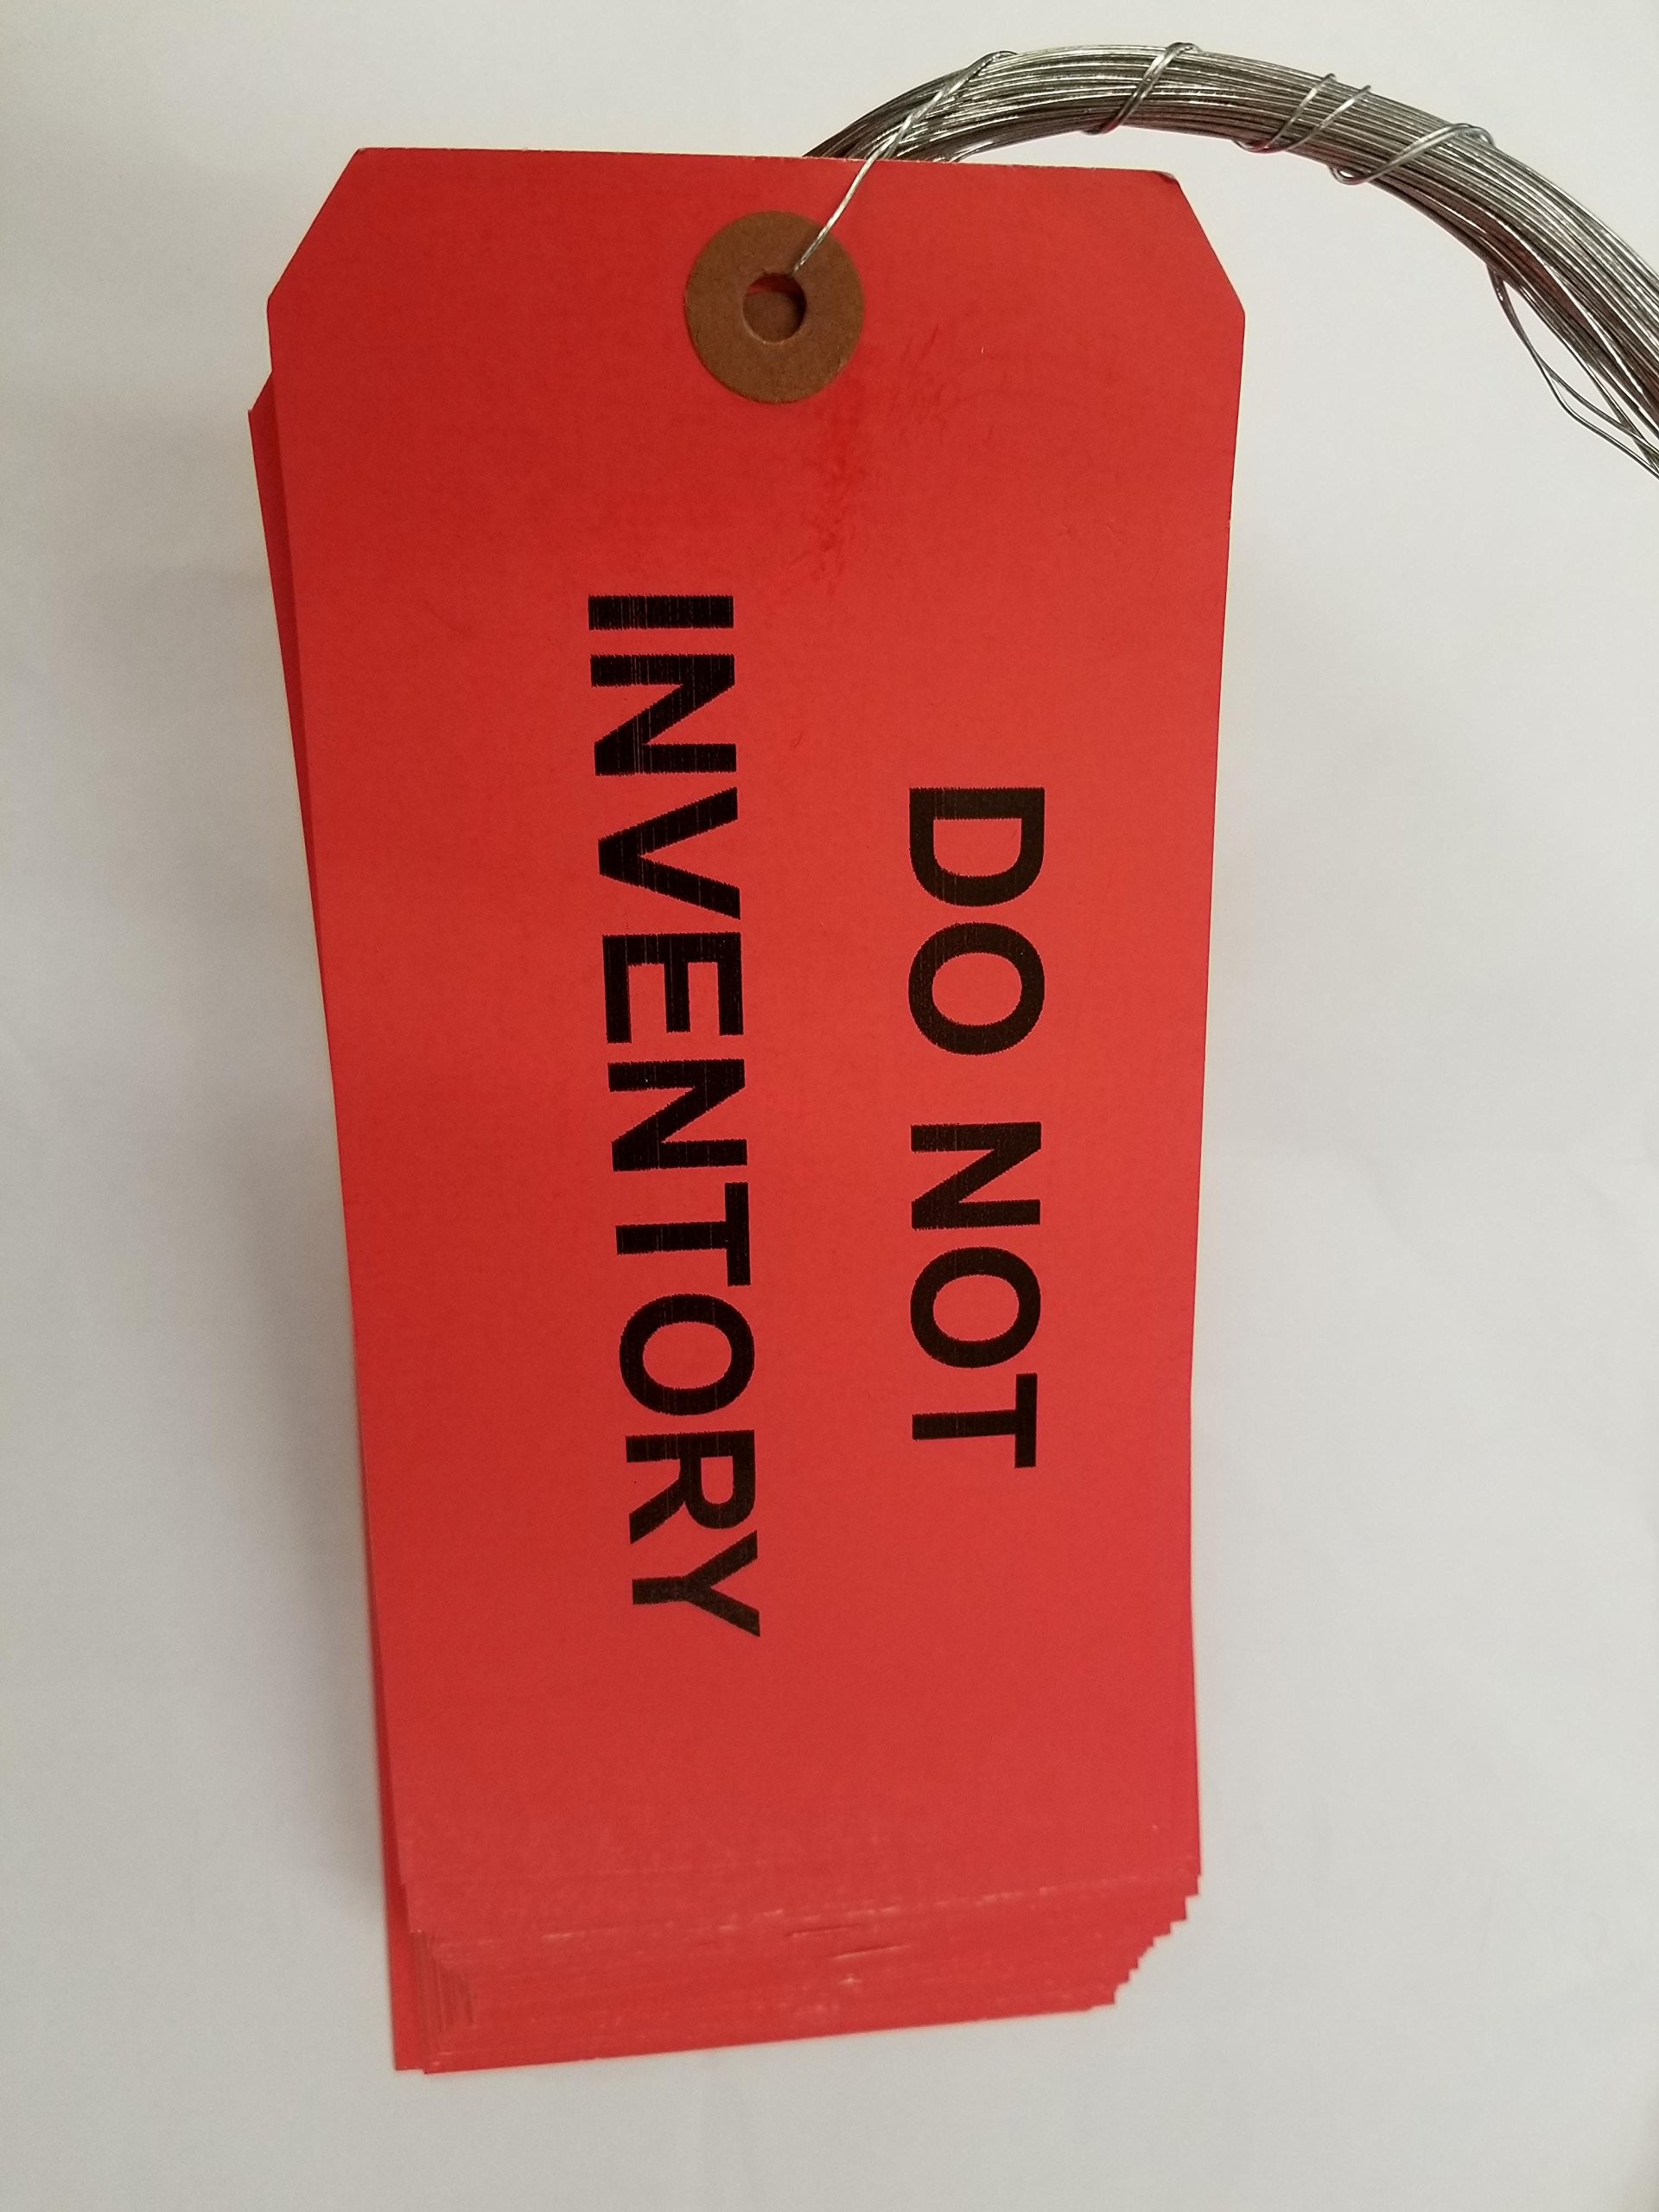 DO NOT INVENTORY TAG #8, WIRED, BUNDLE OF 50 TAGS, RED 3-1/8'' x 6-1/4'' by Linco (Image #1)